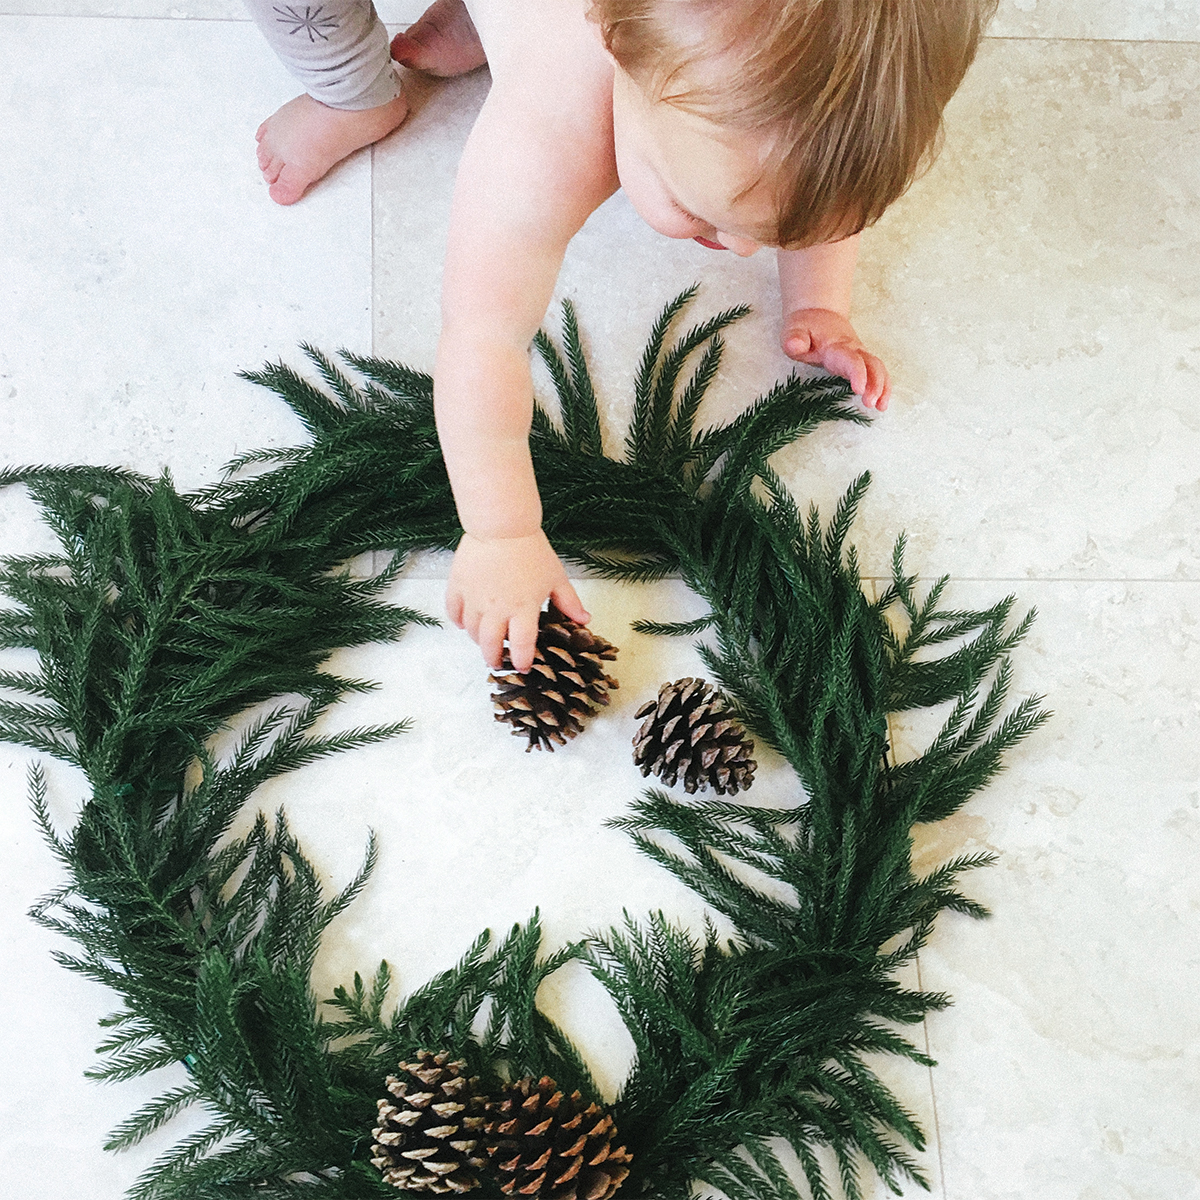 Toddler placing pinecone on homemade wreath